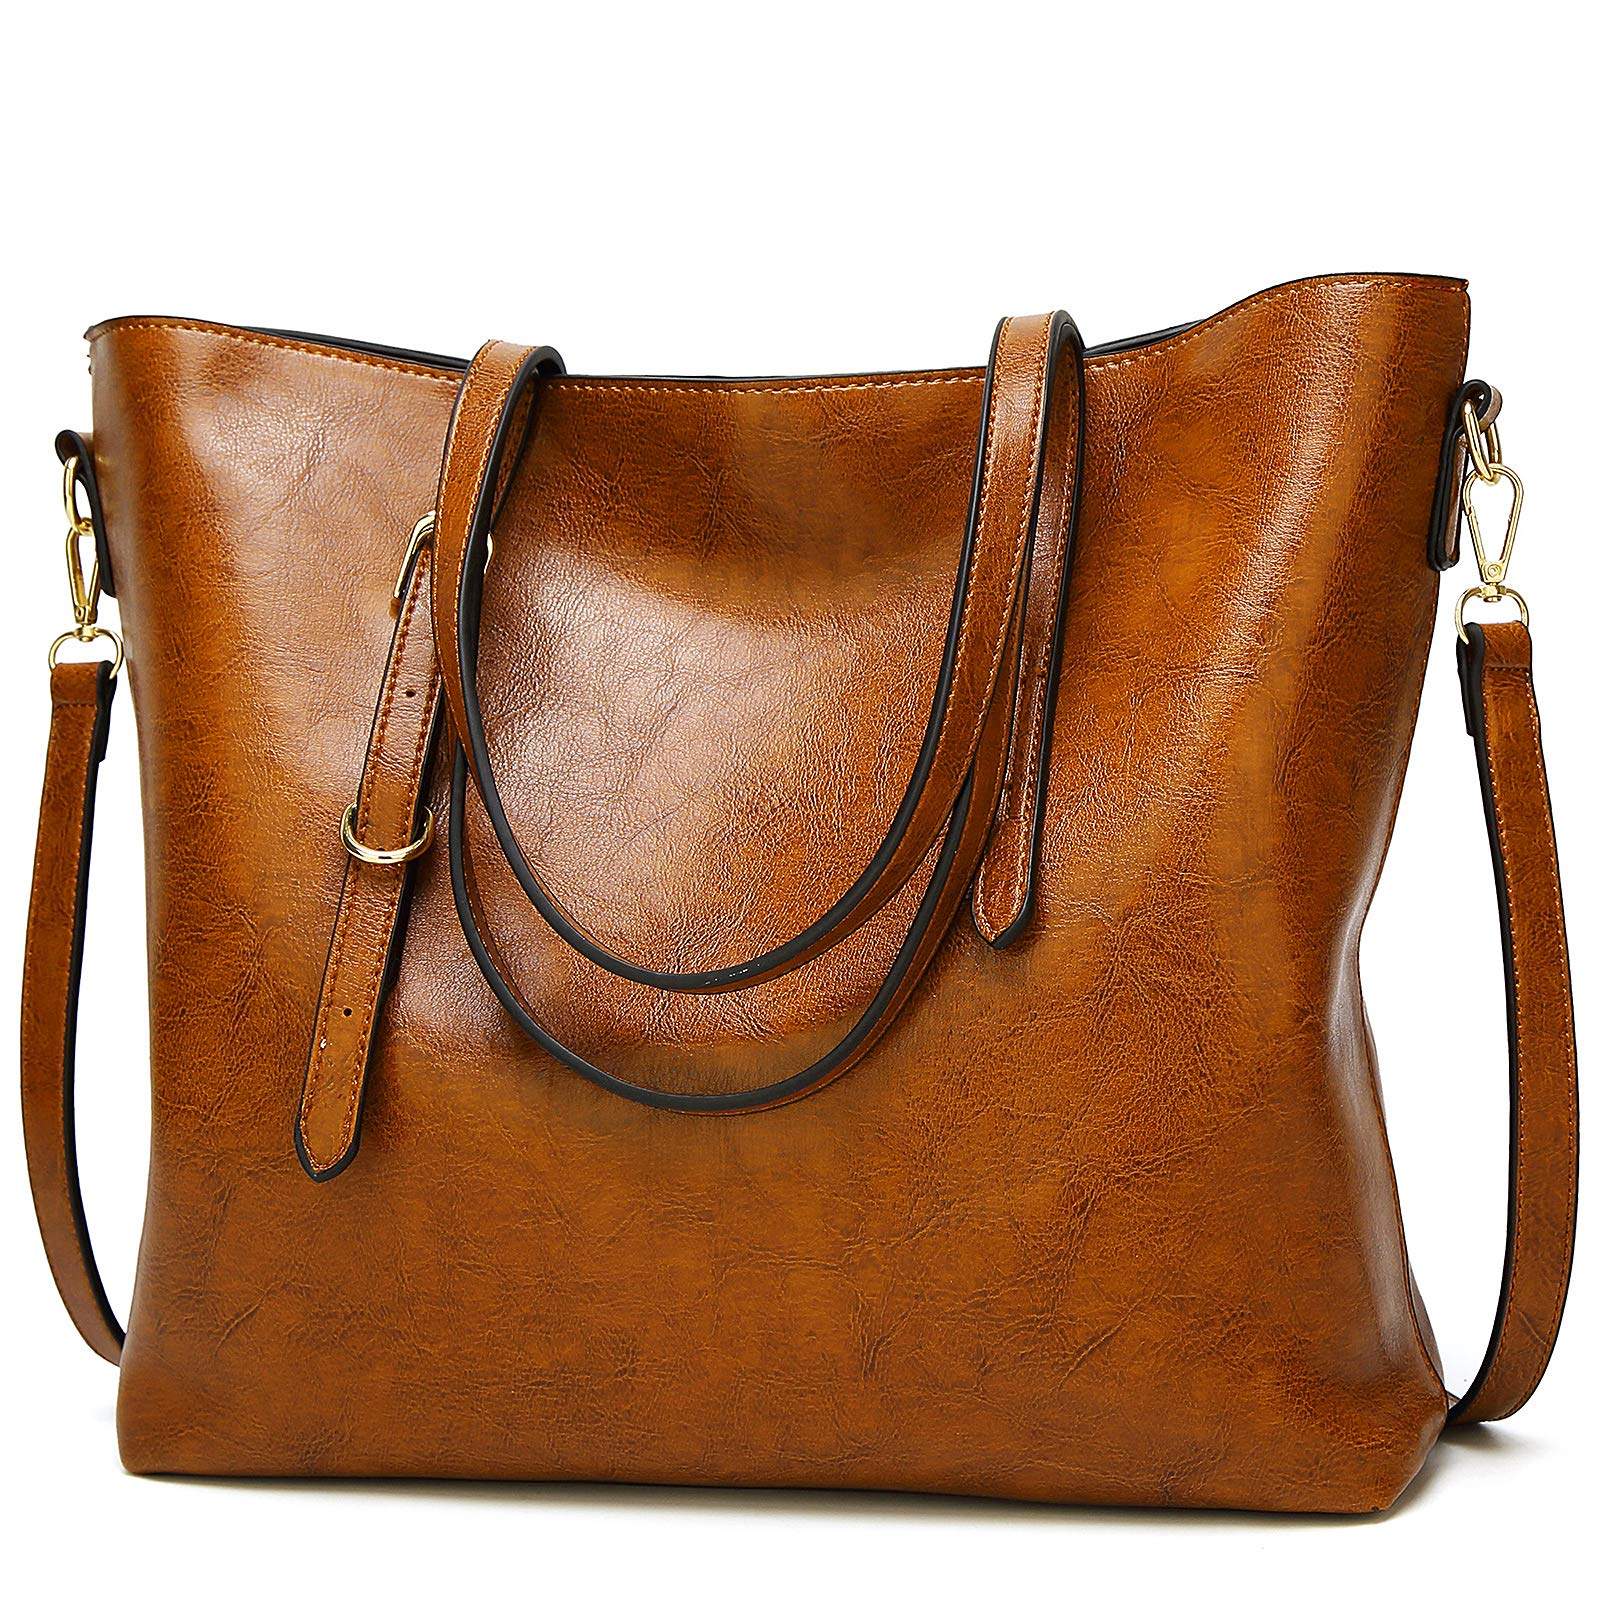 AILLOSA Purses and Handbags for Women Satchel Shoulder Tote Bags by AILLOSA